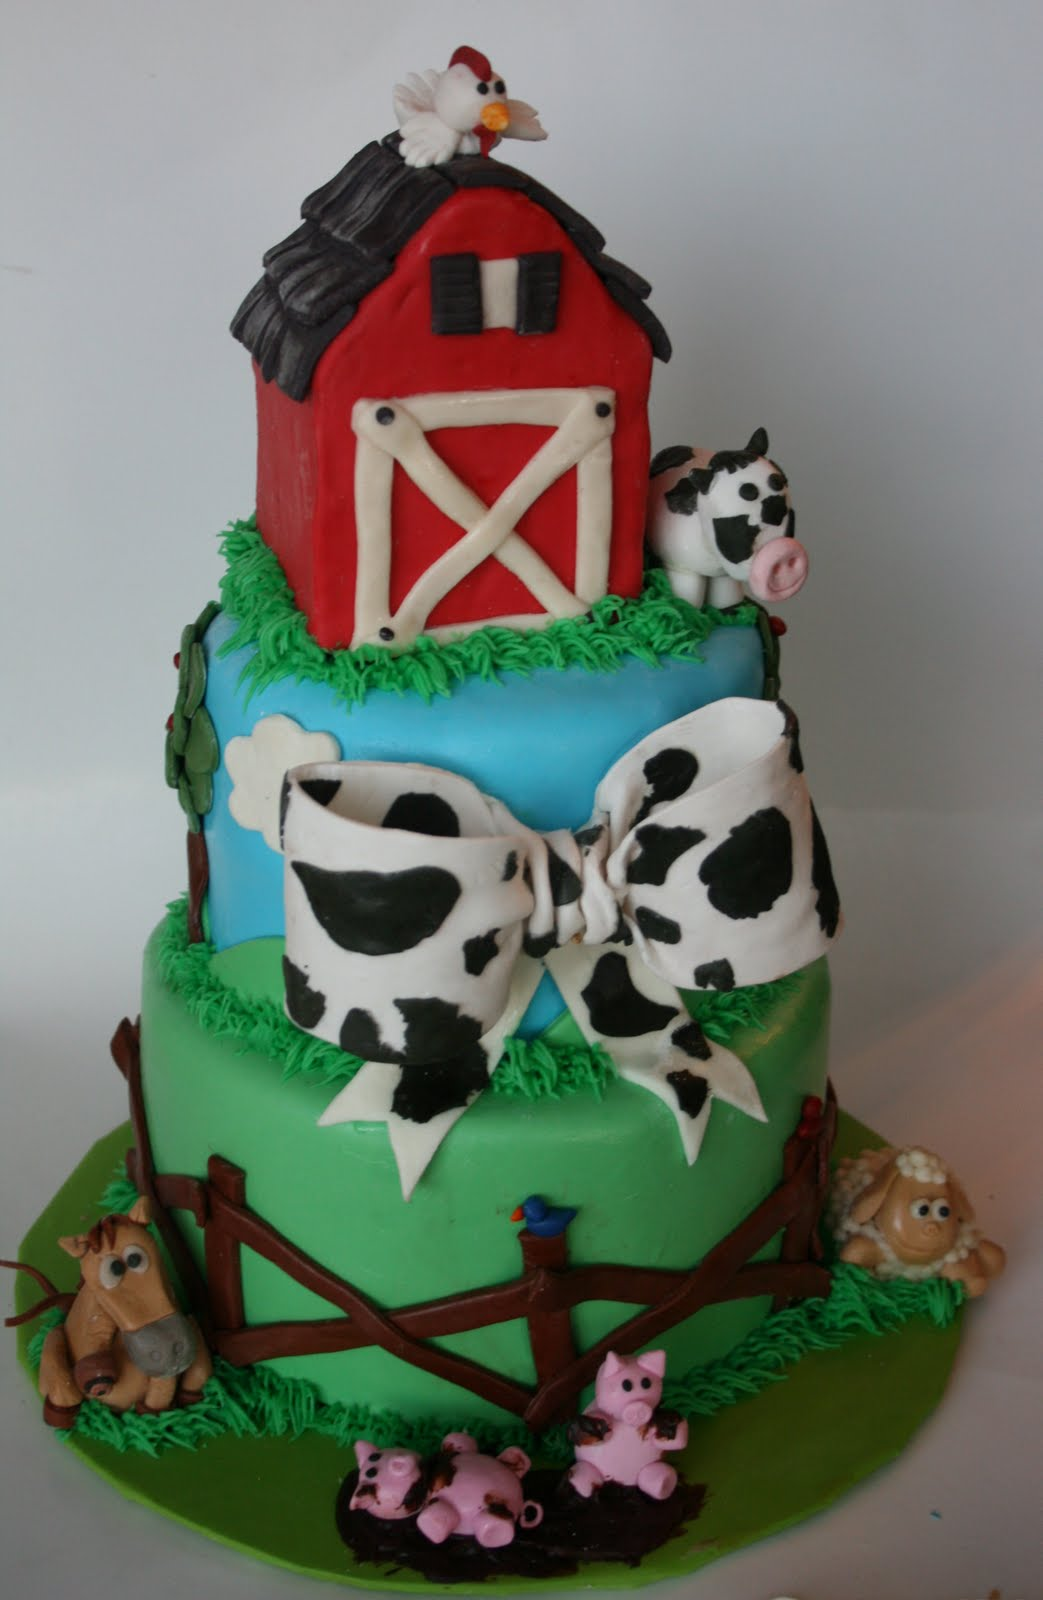 10 Photos of Farm Baby Shower Cakes